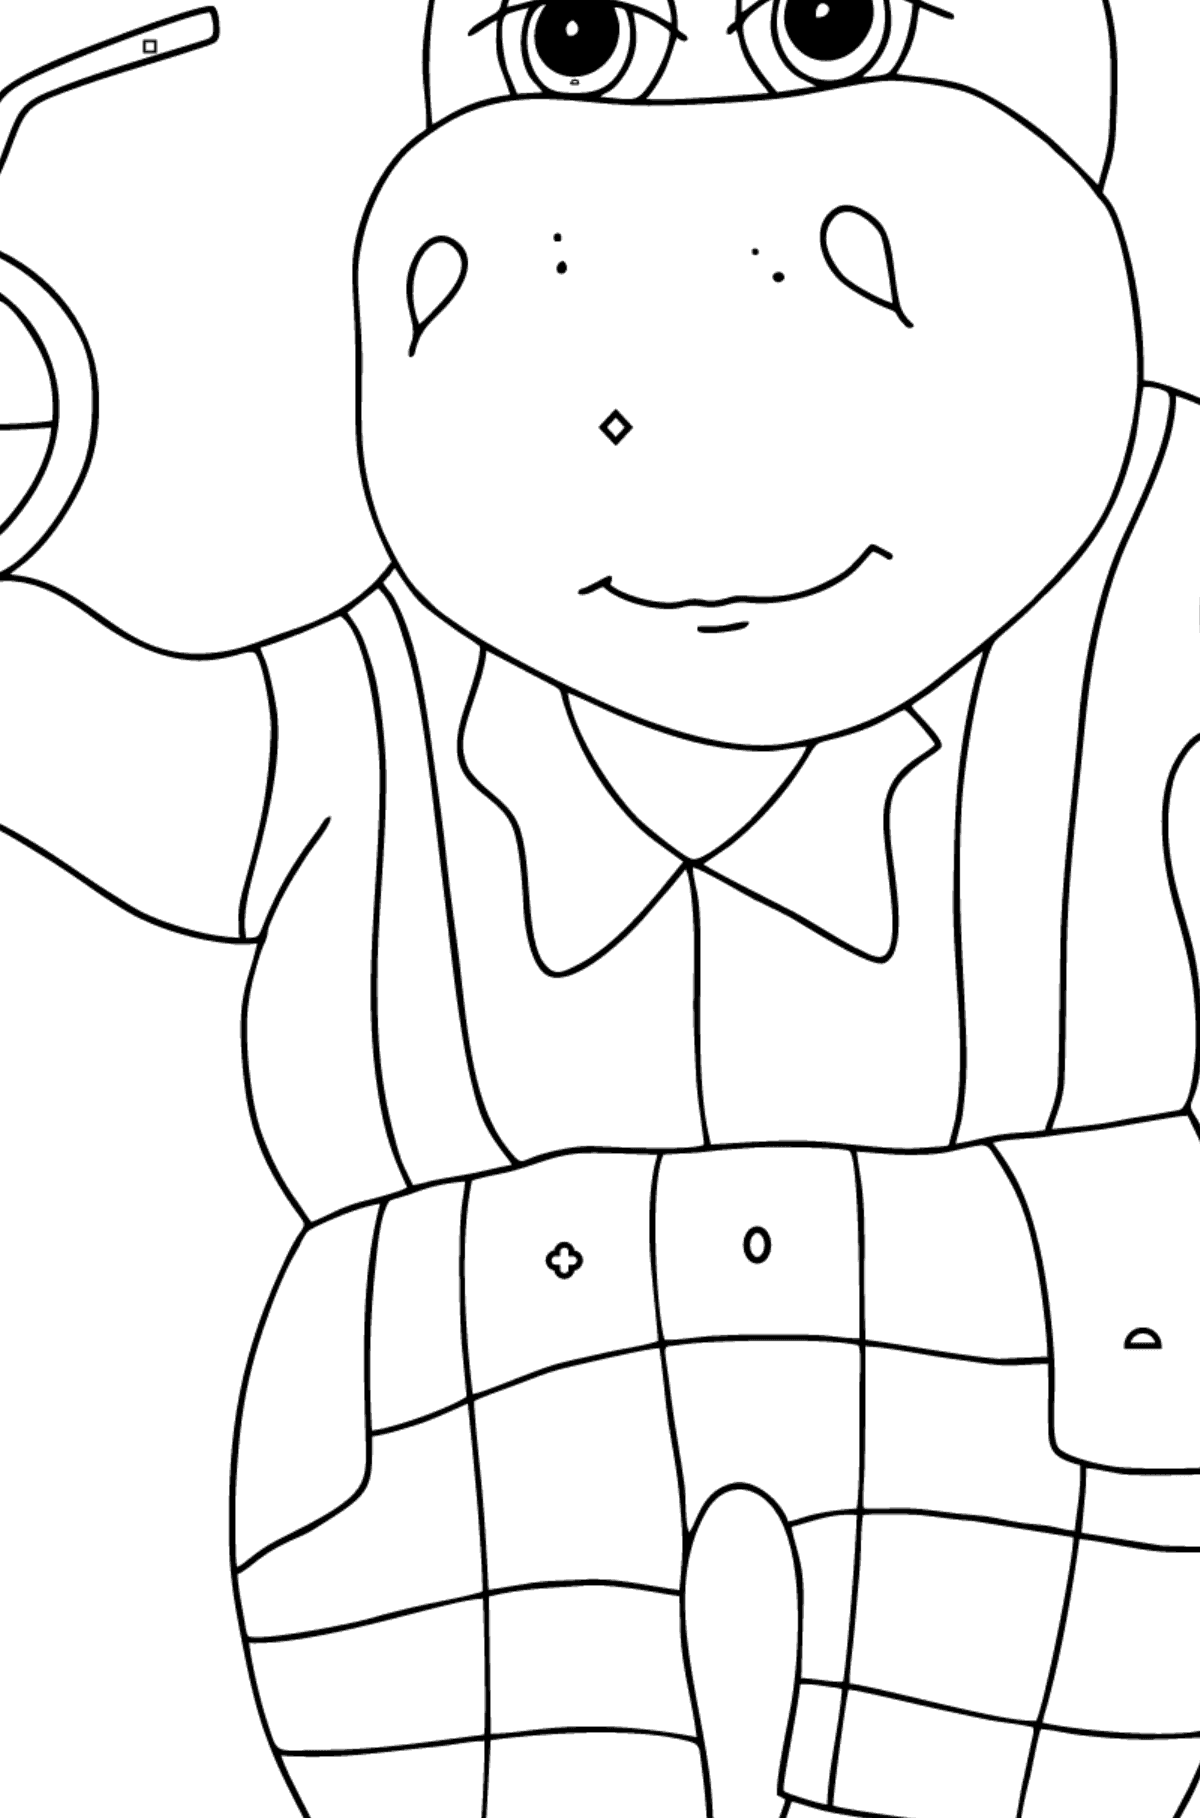 Coloring Page - A Hippo on a Beach with Juice for Children  - Color by Geometric Shapes